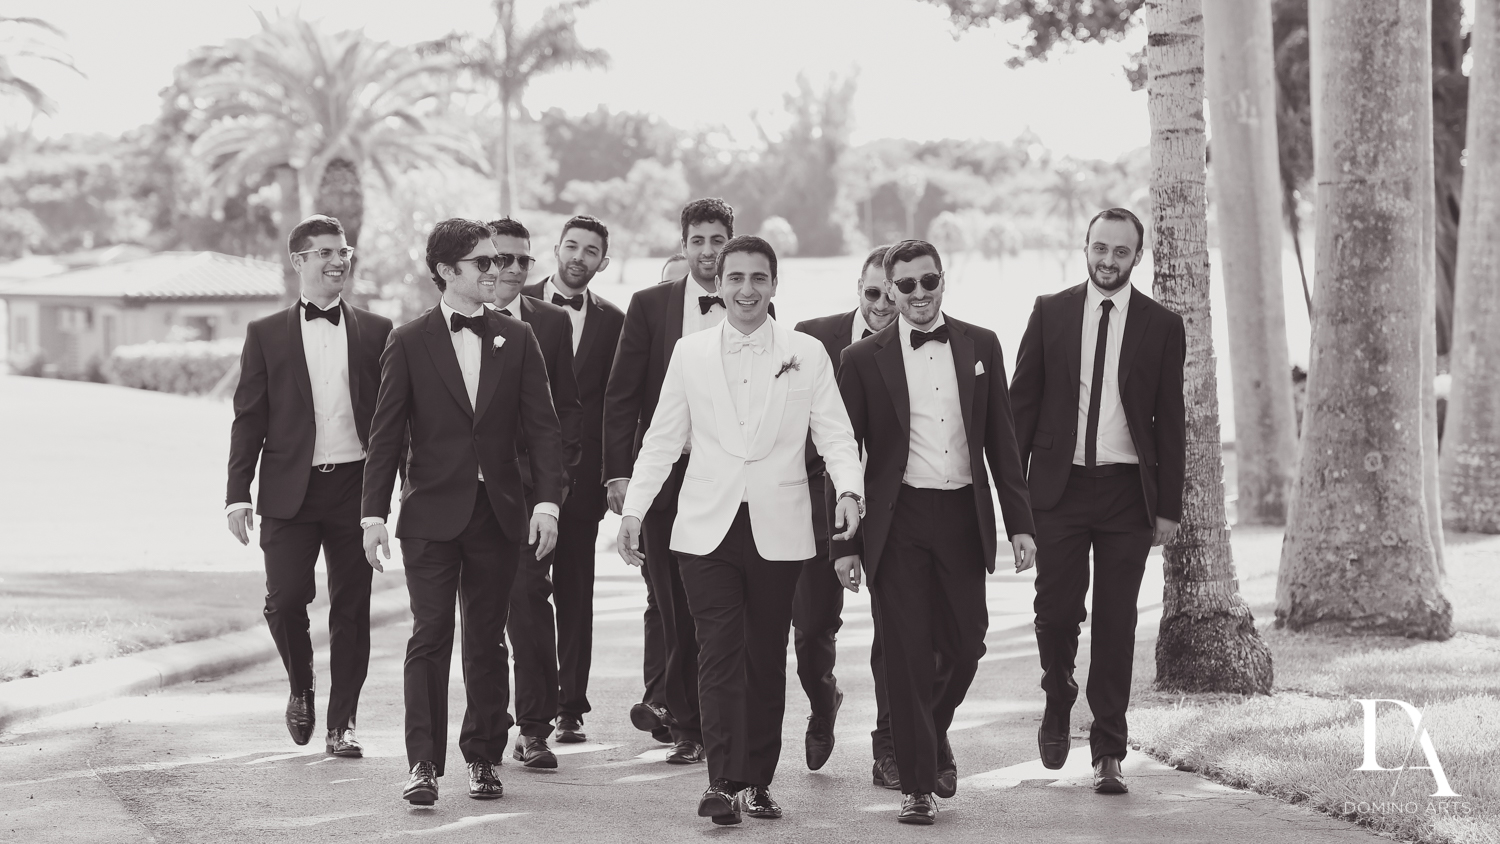 groom and guys at Modern Luxury Jewish Wedding Photography at Biltmore Miami Coral Gables